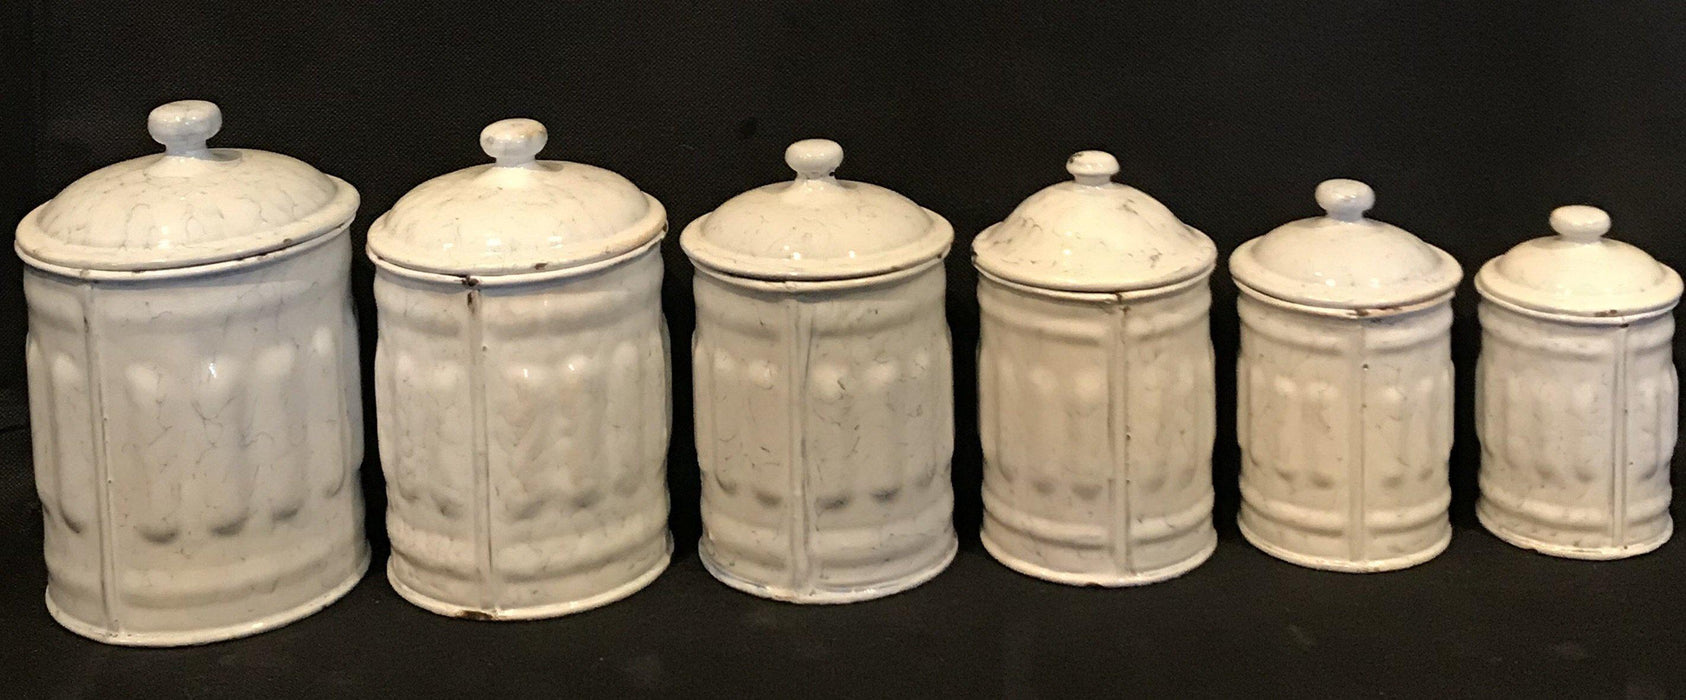 French Six Piece Enamel Canister Set White with Black Hand Lettering to buy